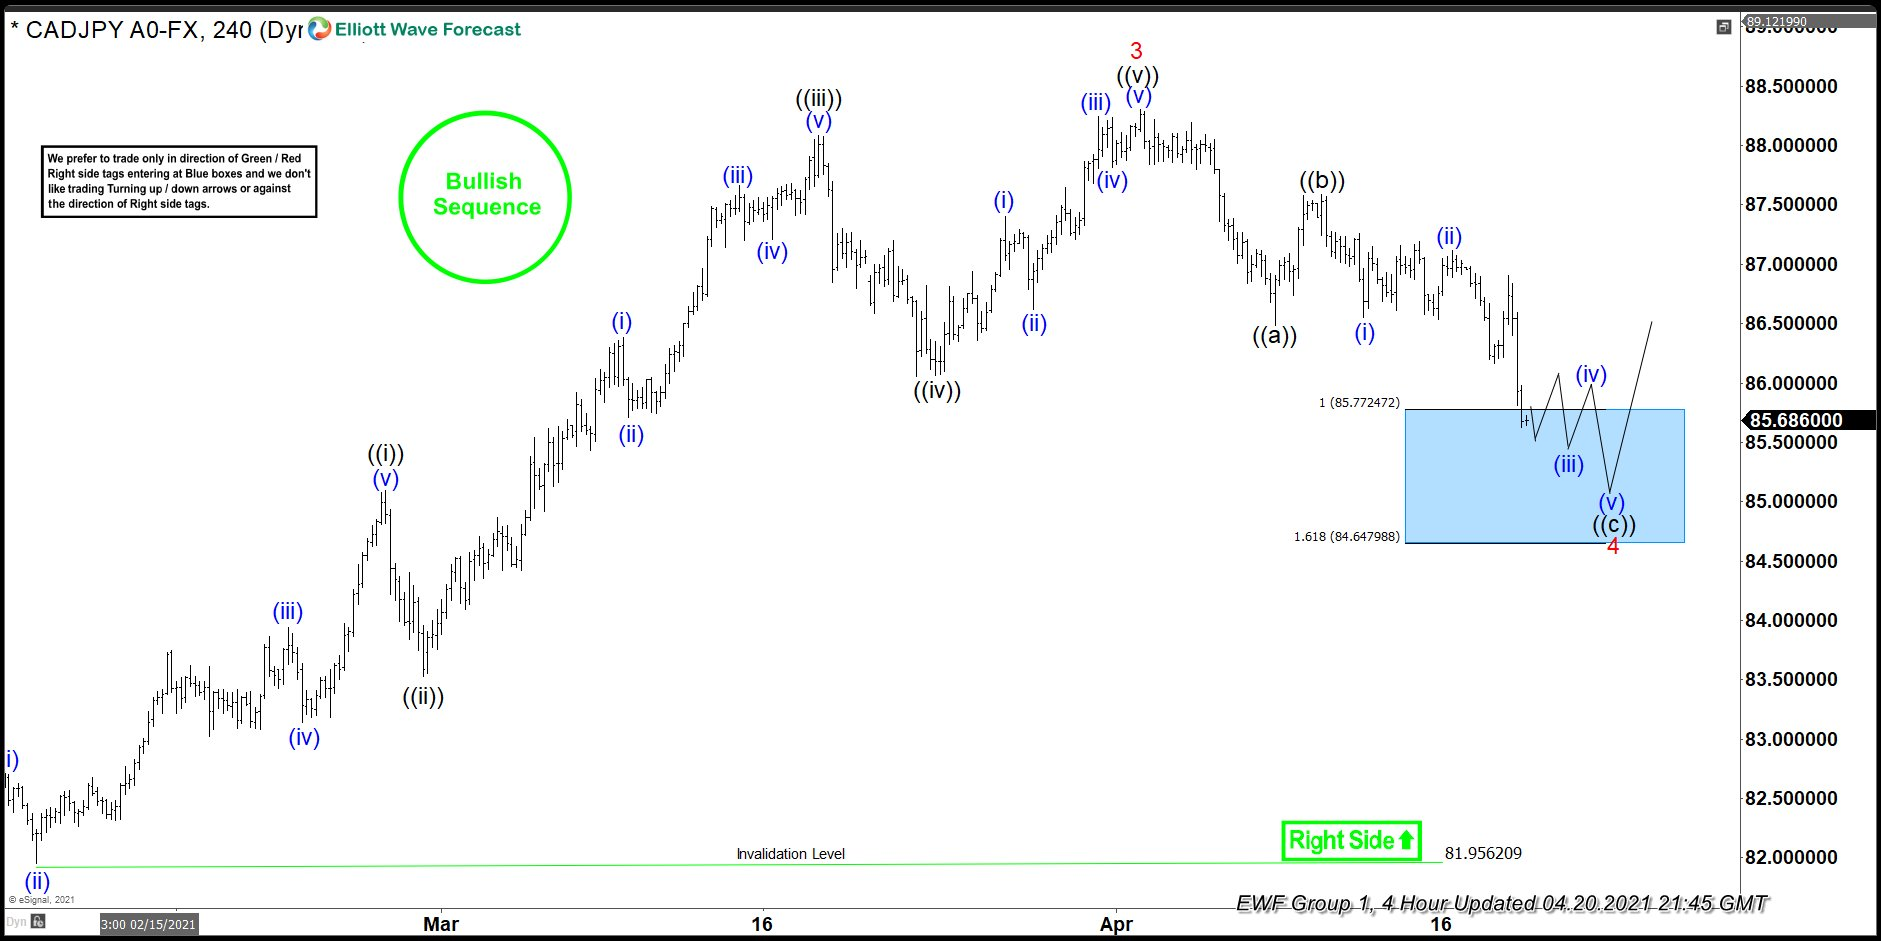 CADJPY Forecasting The Rally & Buying The Dips At The Extremes